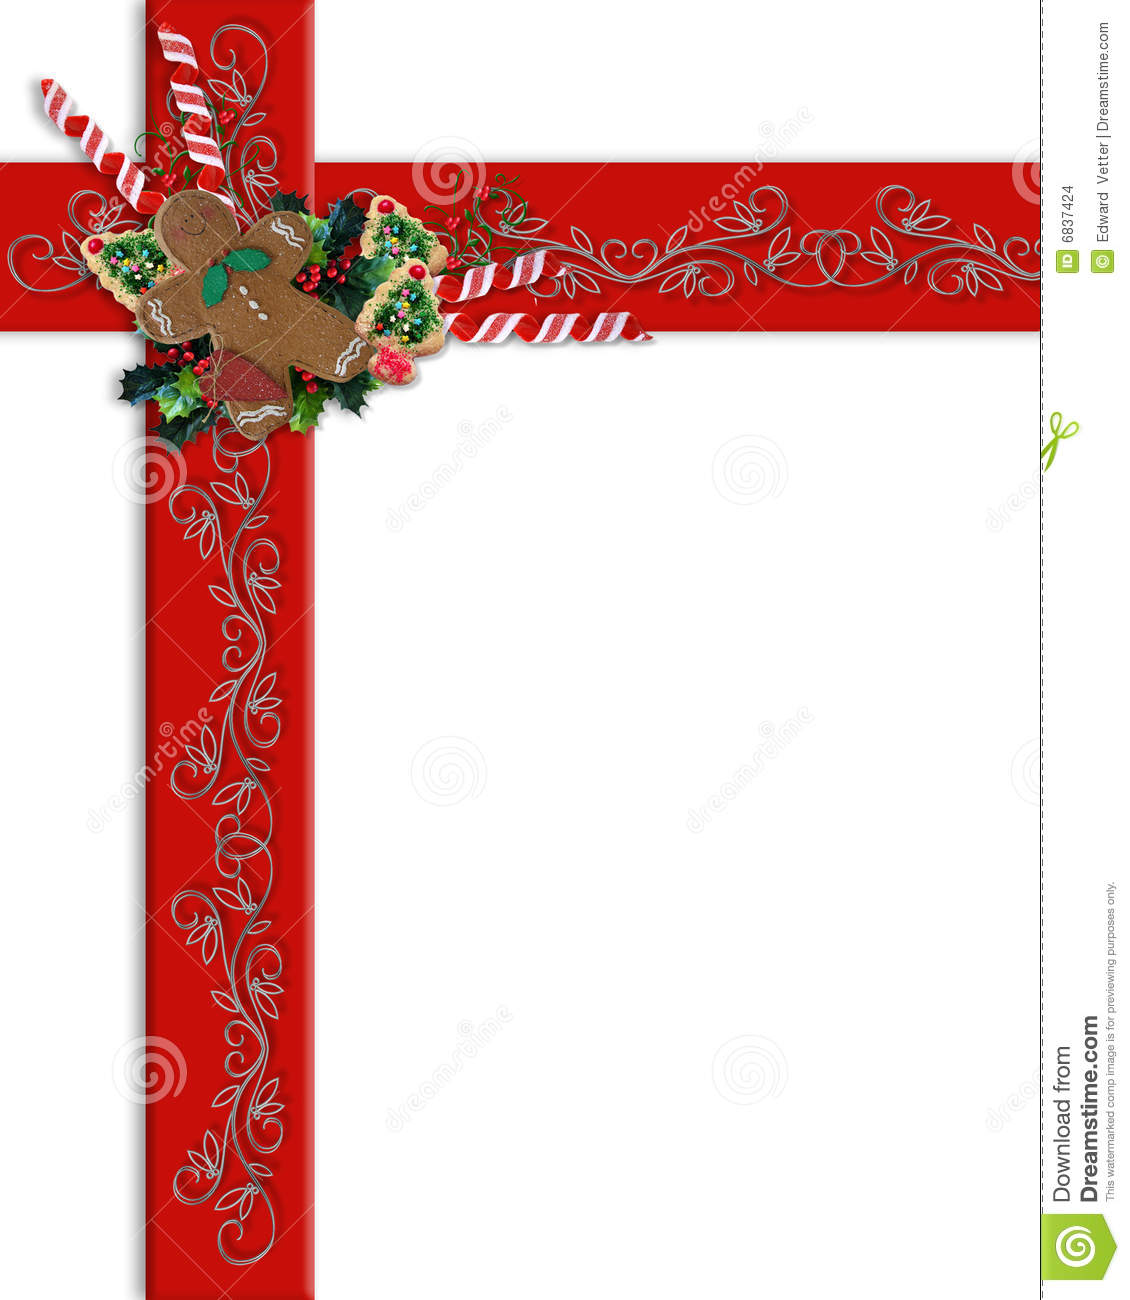 Christmas border red ribbons and treats stock illustration